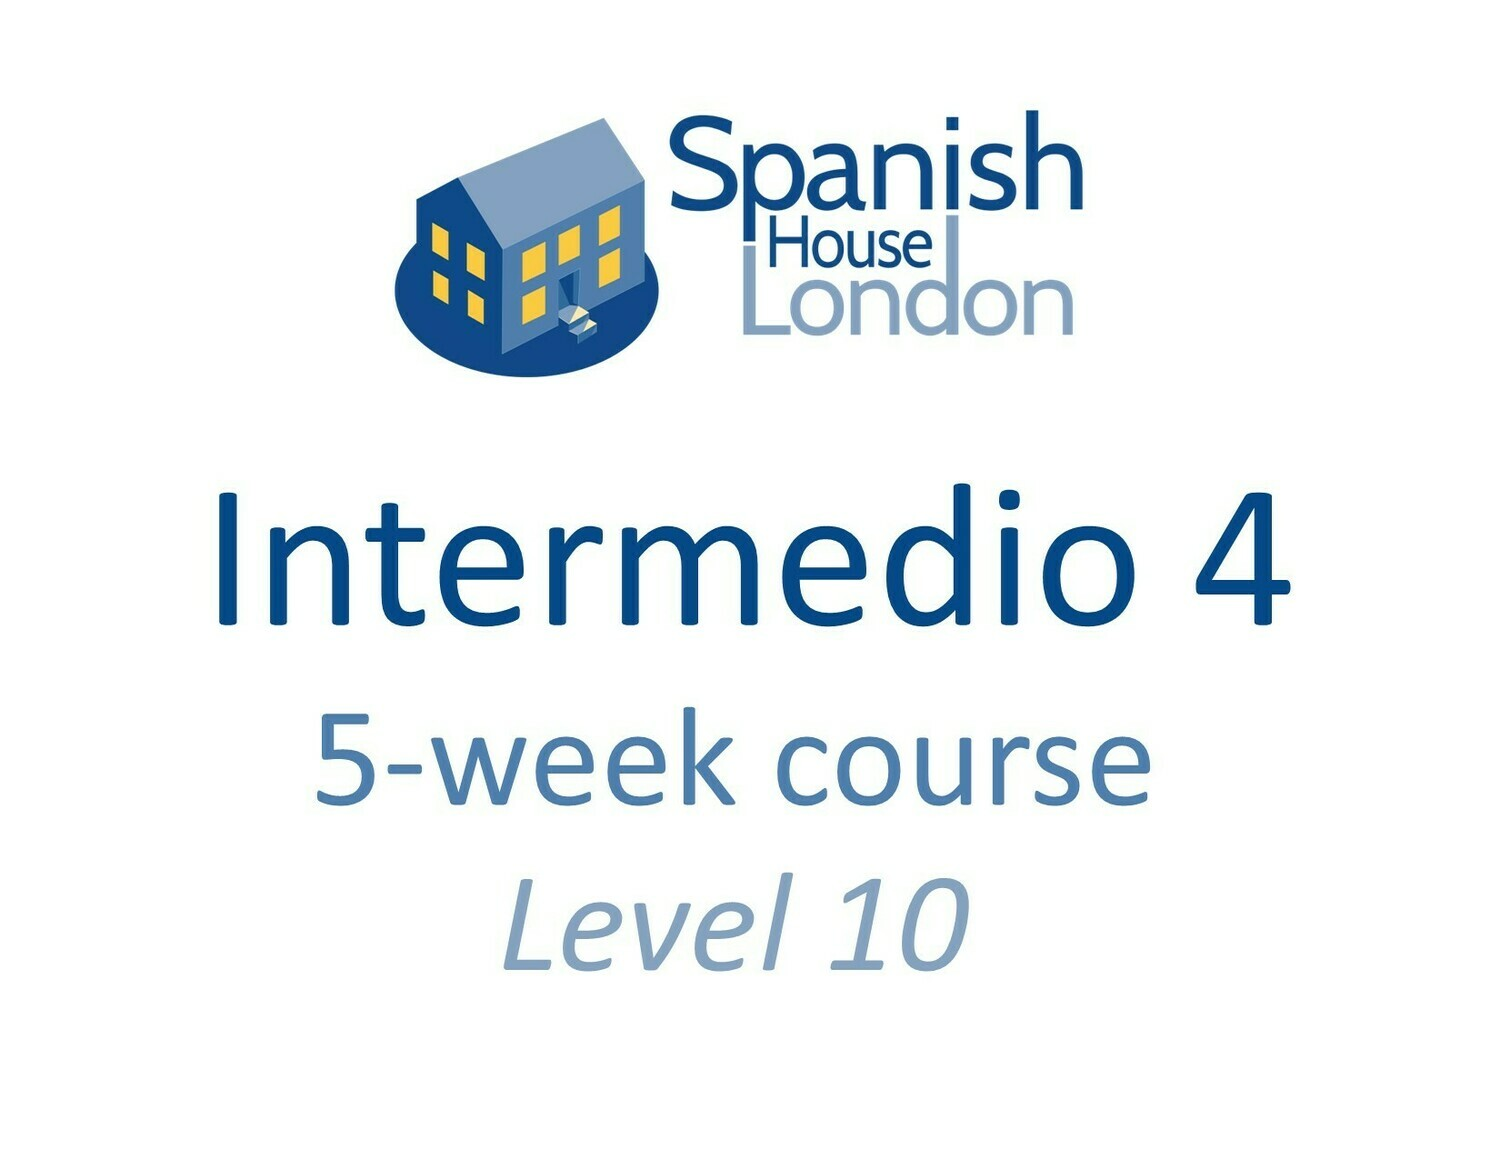 Five-Week Intensive Intermedio 4 Course starting on 11th January at 6pm